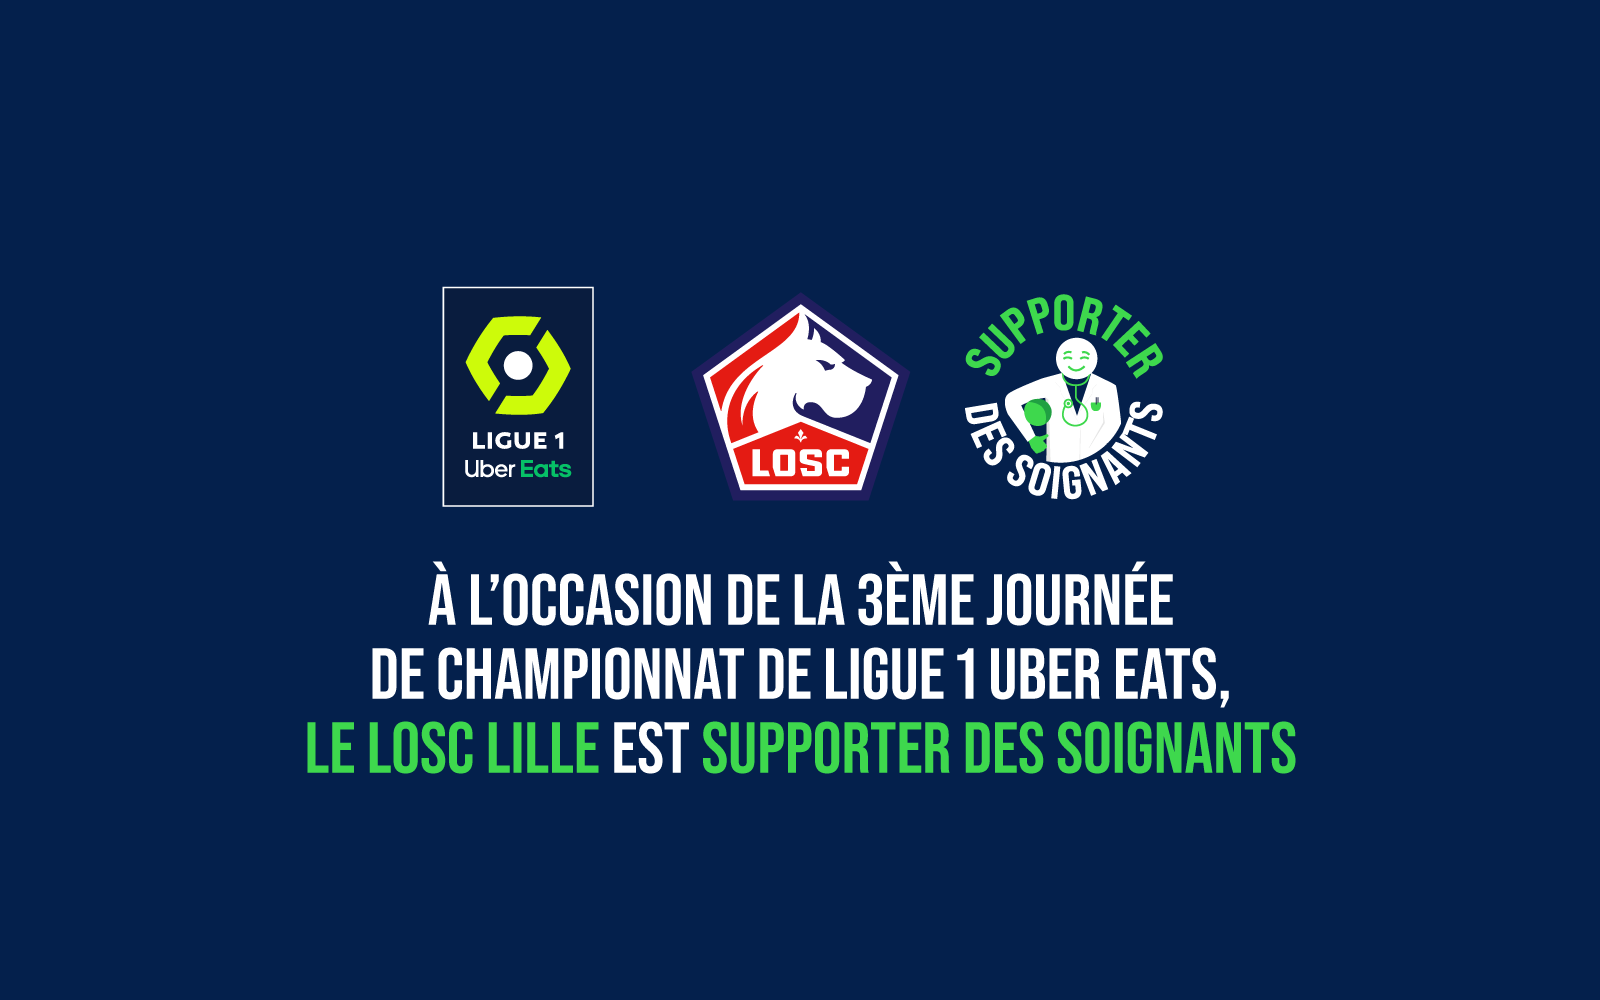 SUPPORTER_SOIGNANTS_LILLE.png